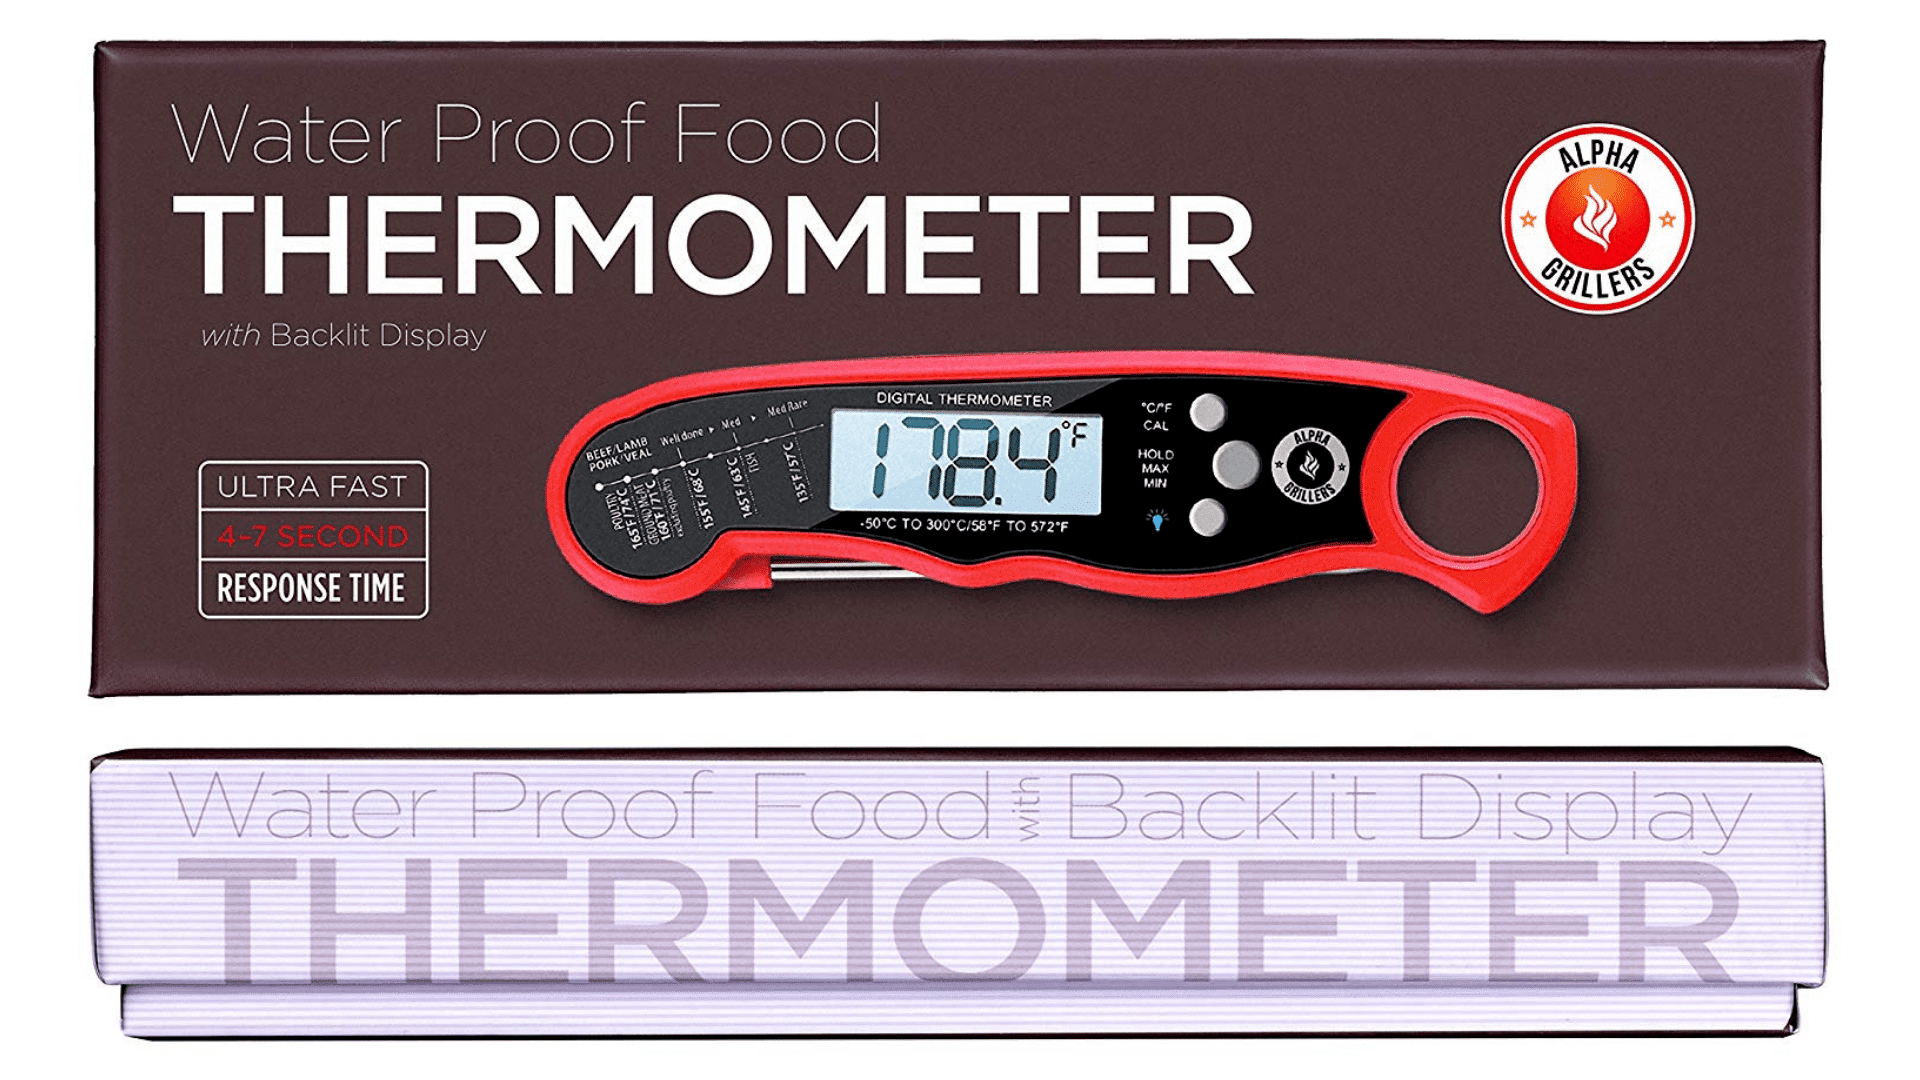 Picture of Alpha Grillers Instant Read Meat Thermometer features